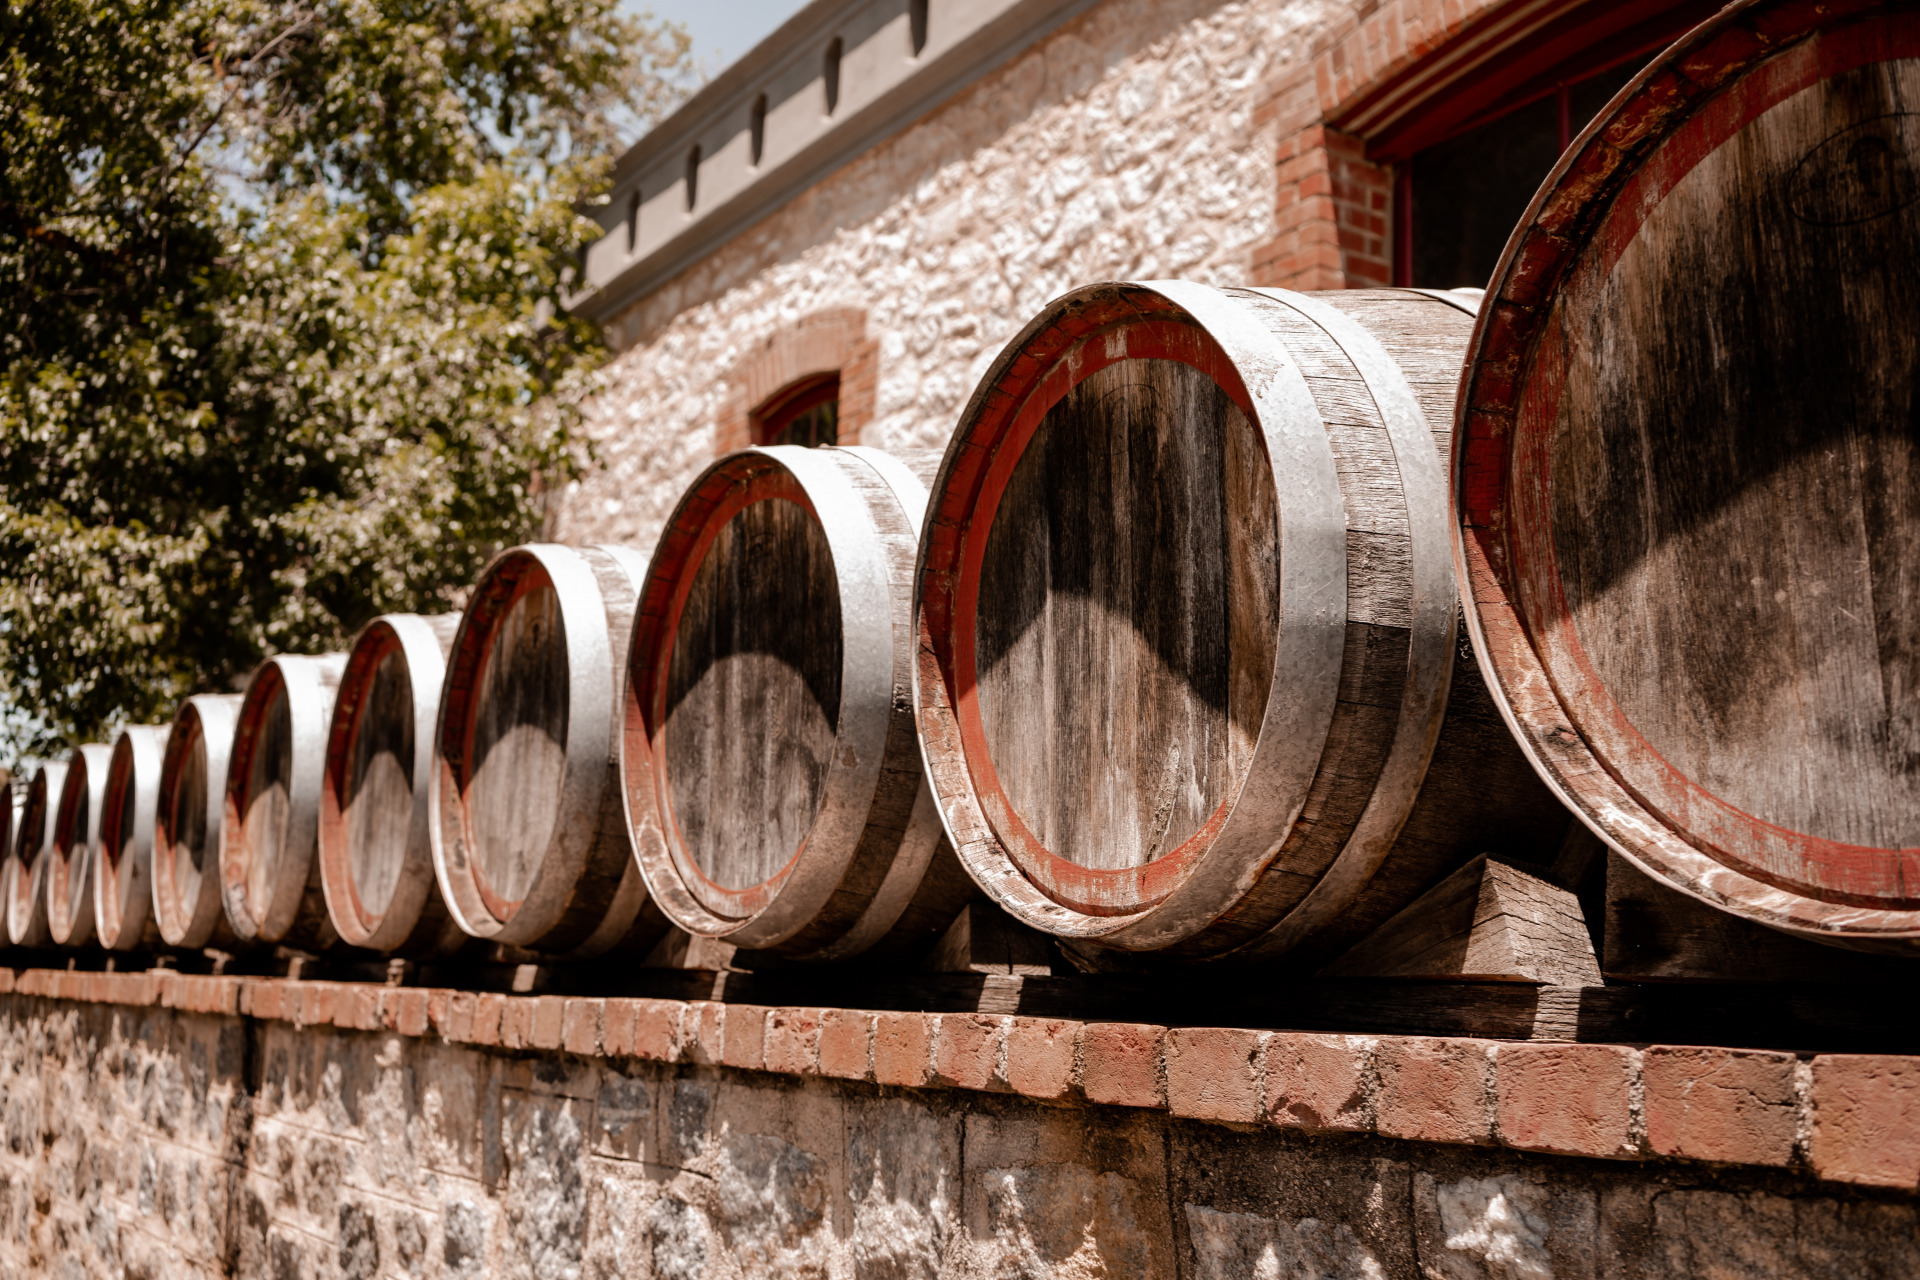 Why Do People Age Wine in Wooden Barrels?